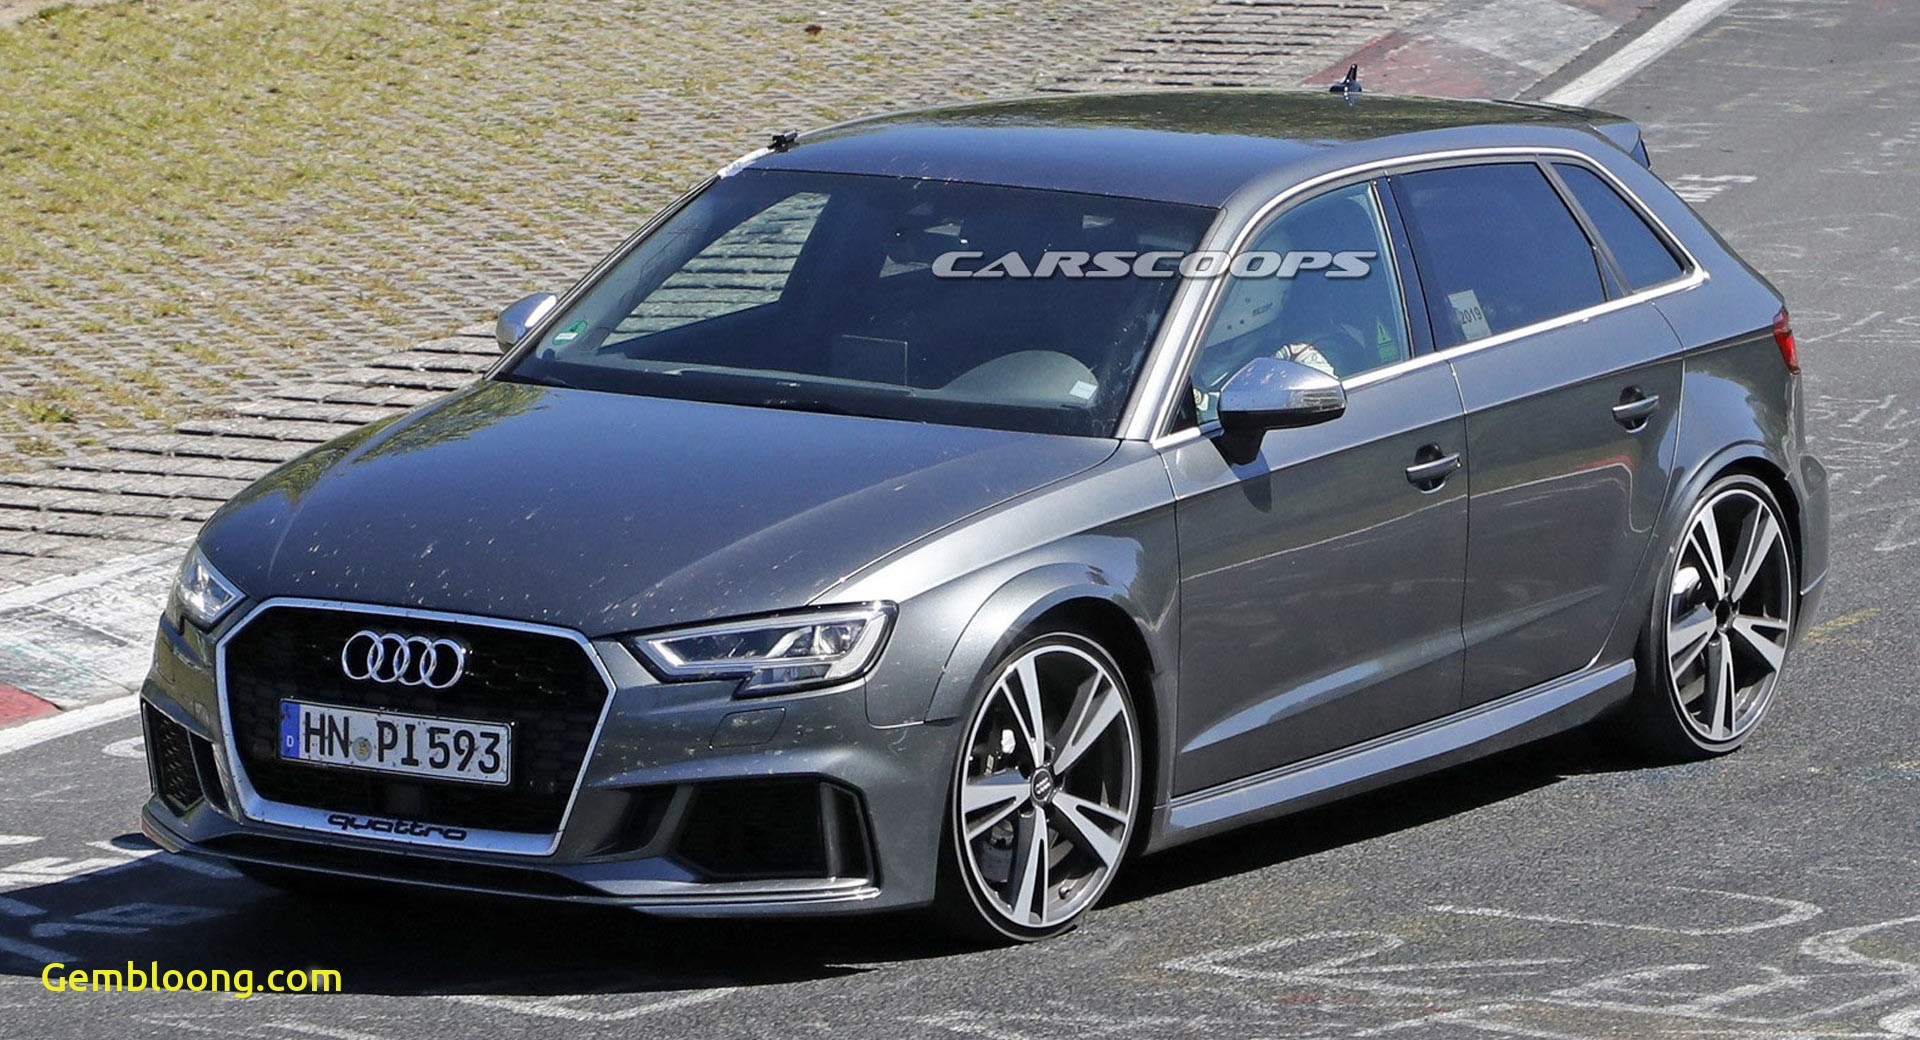 Audi Rs3 for Sale Best Of 2021 Audi Rs3 Mule Spotted Could Have More Than 400 Hp